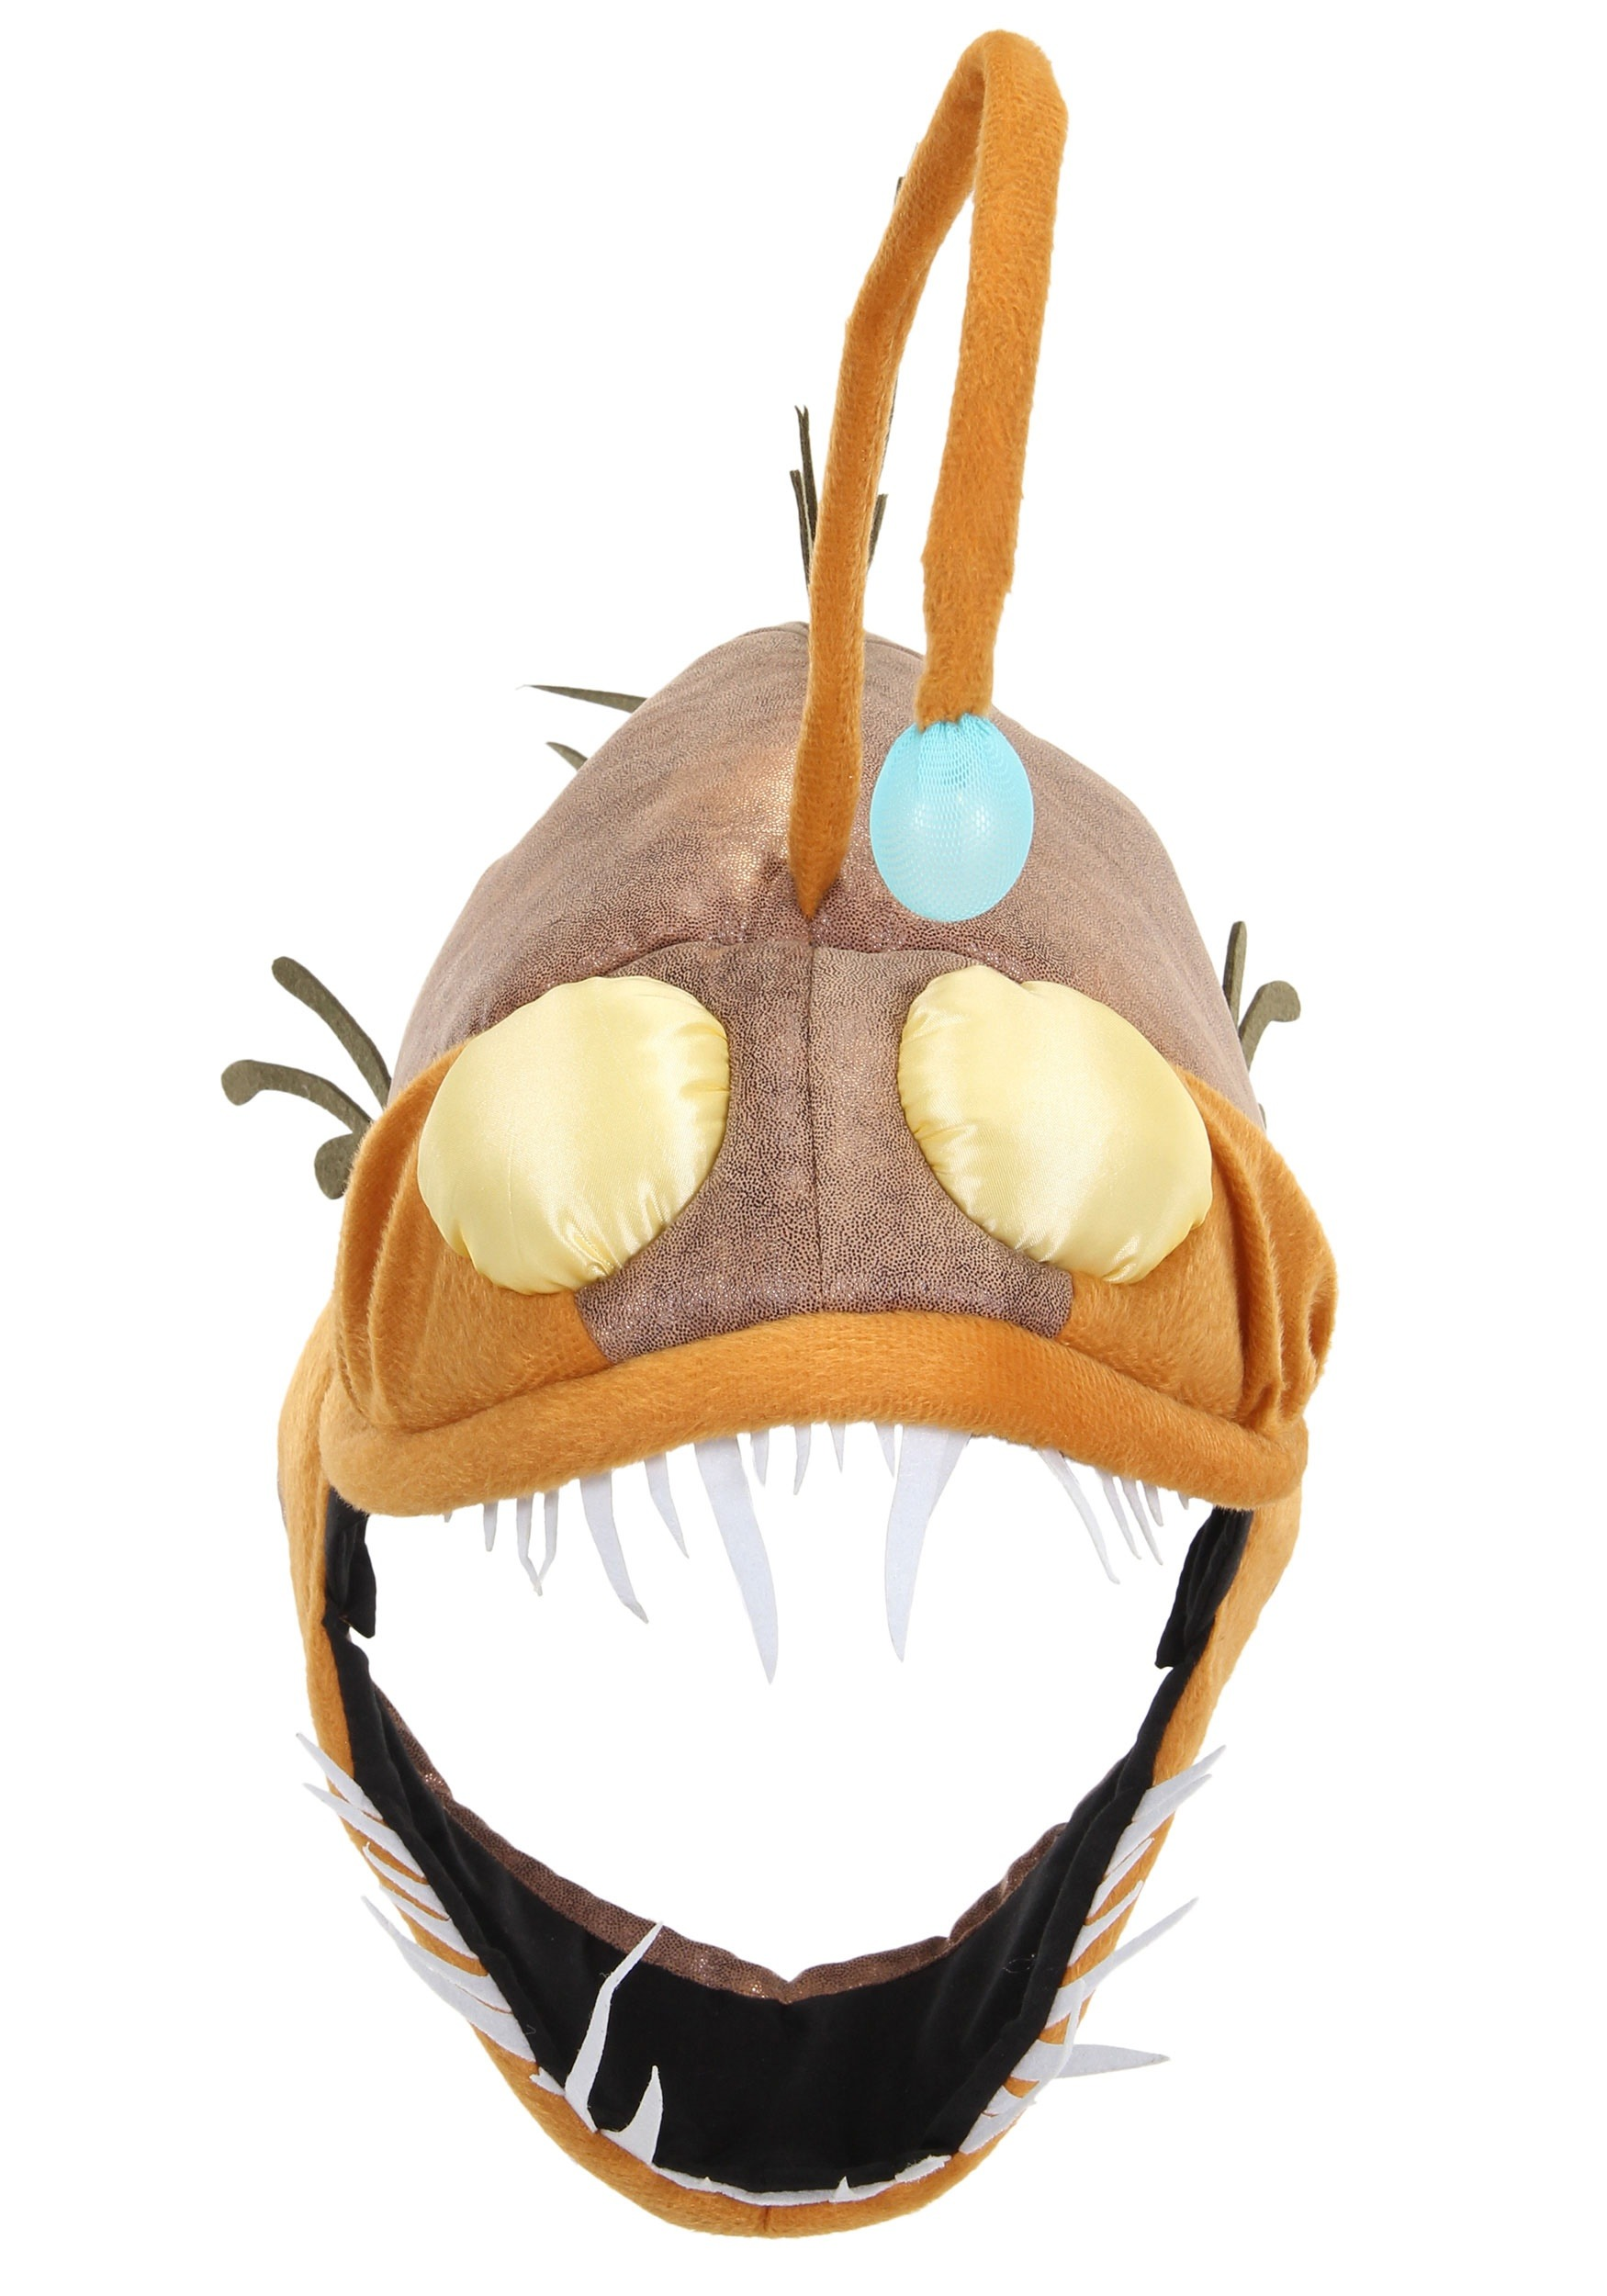 Light Up Angler Fish Jawesome Hat